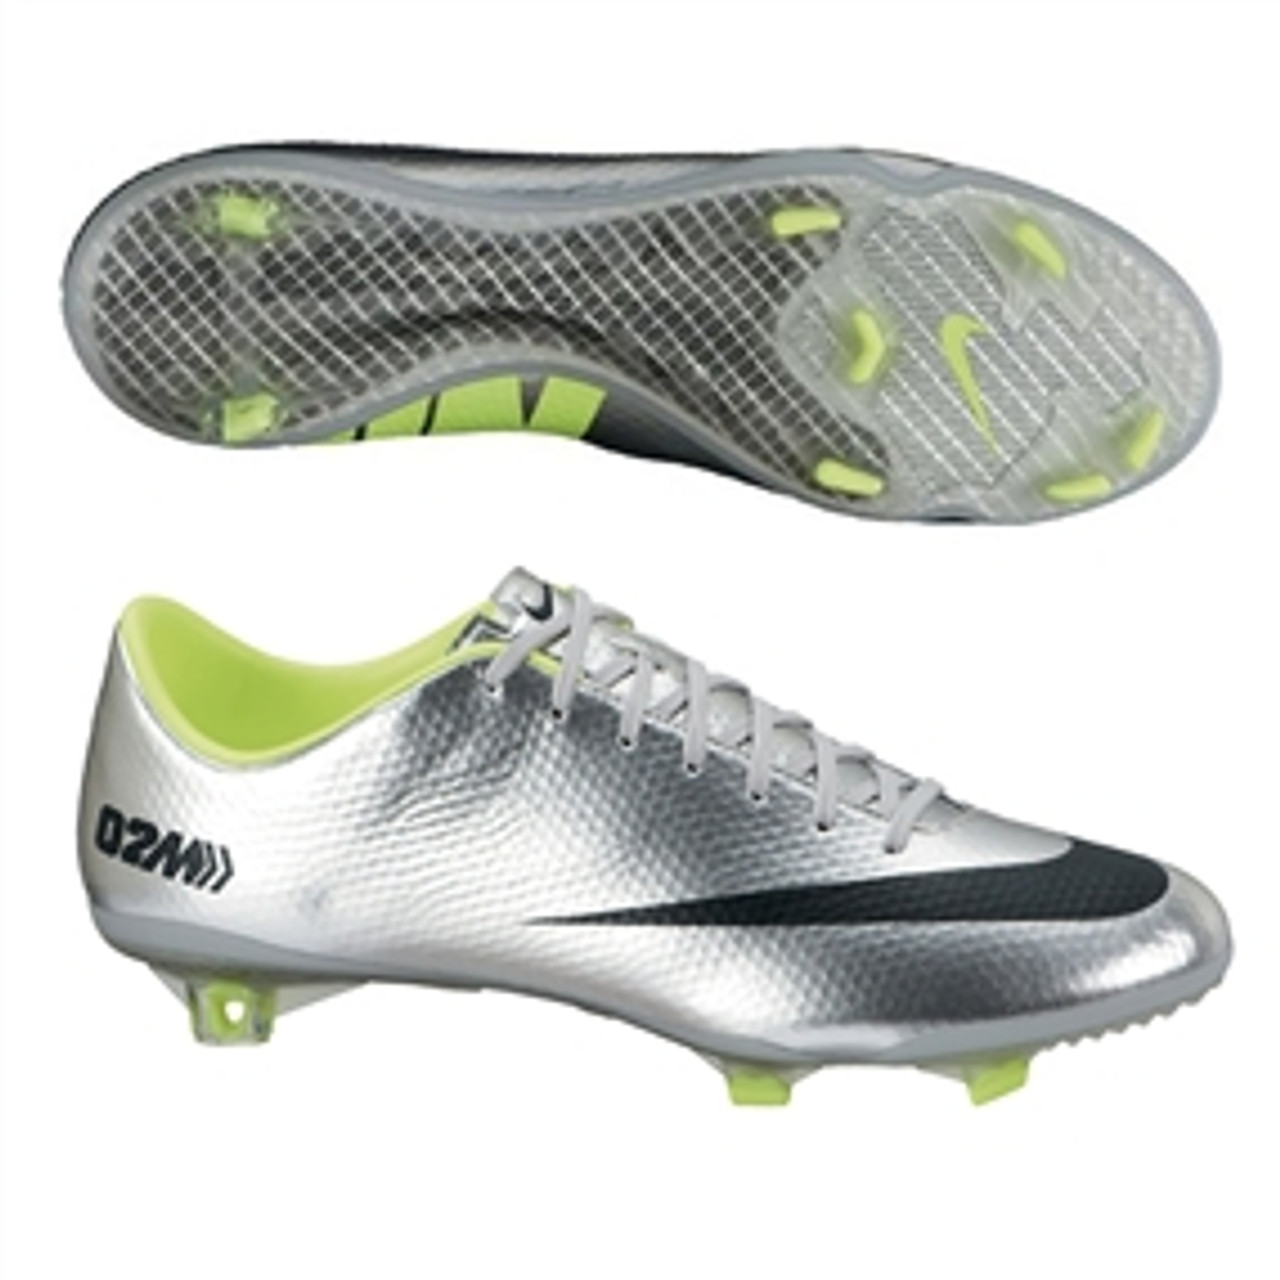 price reduced well known great deals NIKE MERCURIAL VAPOR IX FG Metallic Silver/Volt/Black